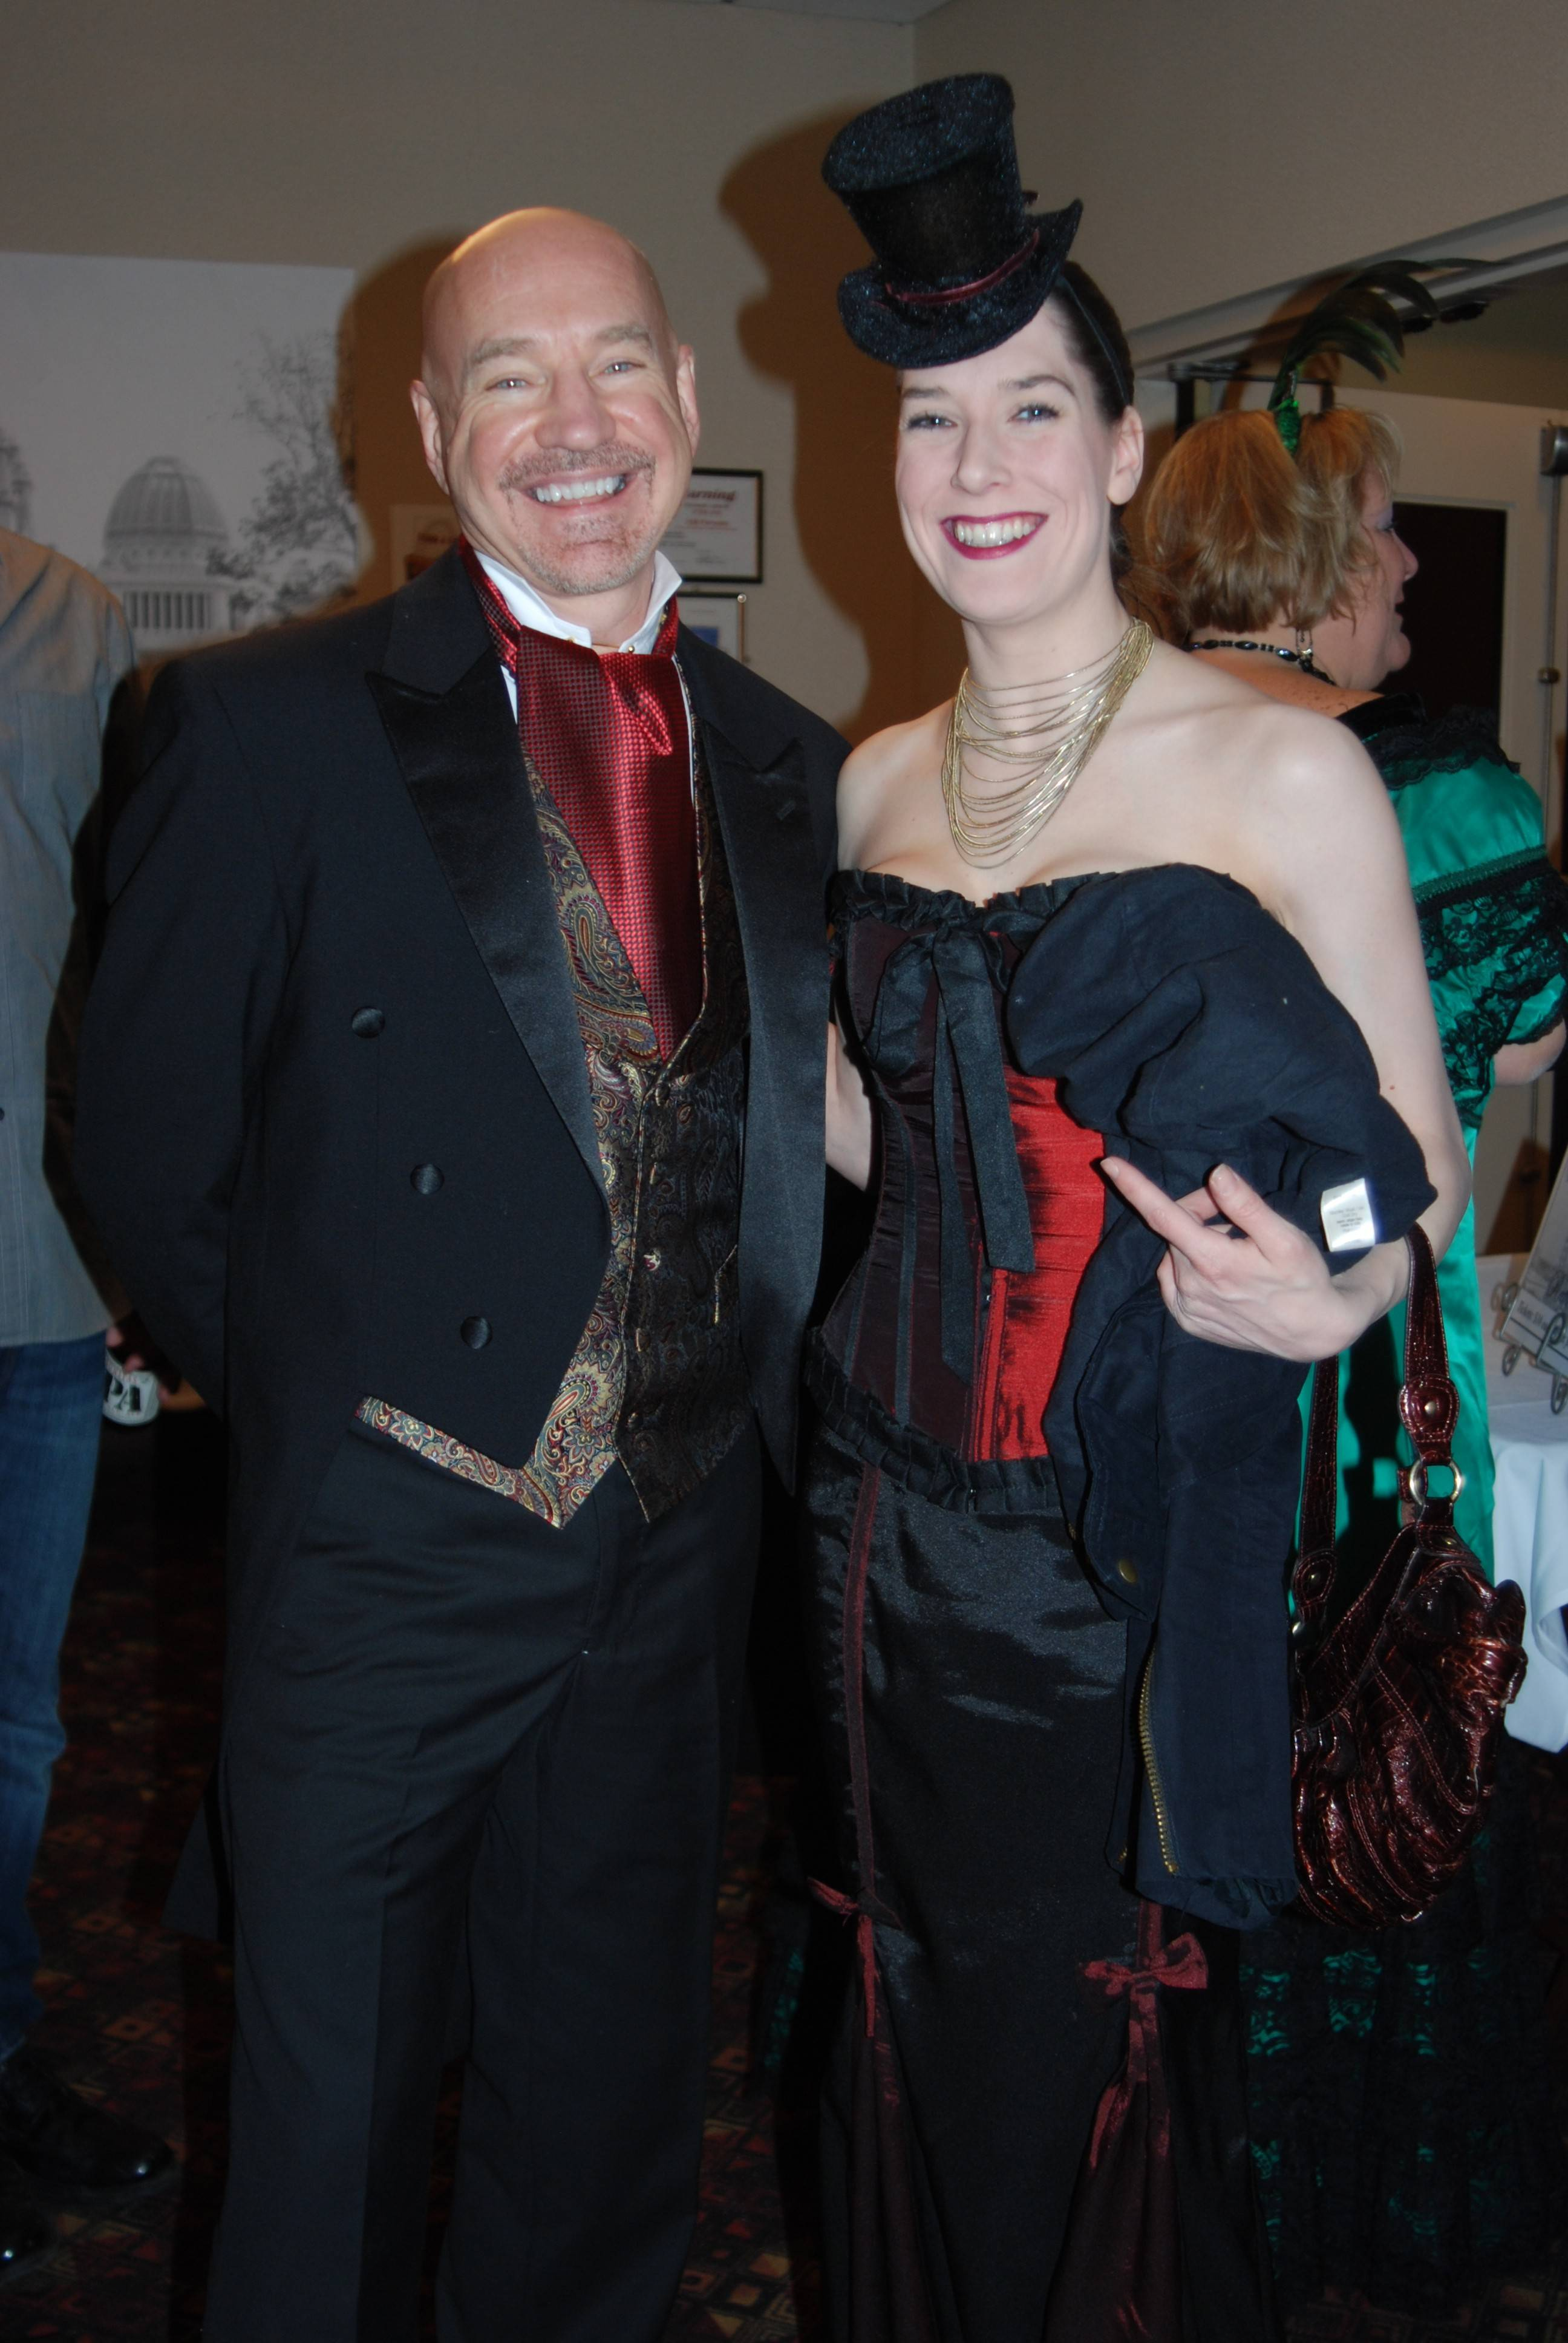 Tim Loga of Mount Prospect and his stepdaughter, Brittany White of Arlington Heights, got into the spirit of the History in the Headlines dinner with authentic costumes from the period of the World's Columbian Exposition, held 120 years ago in Chicago.